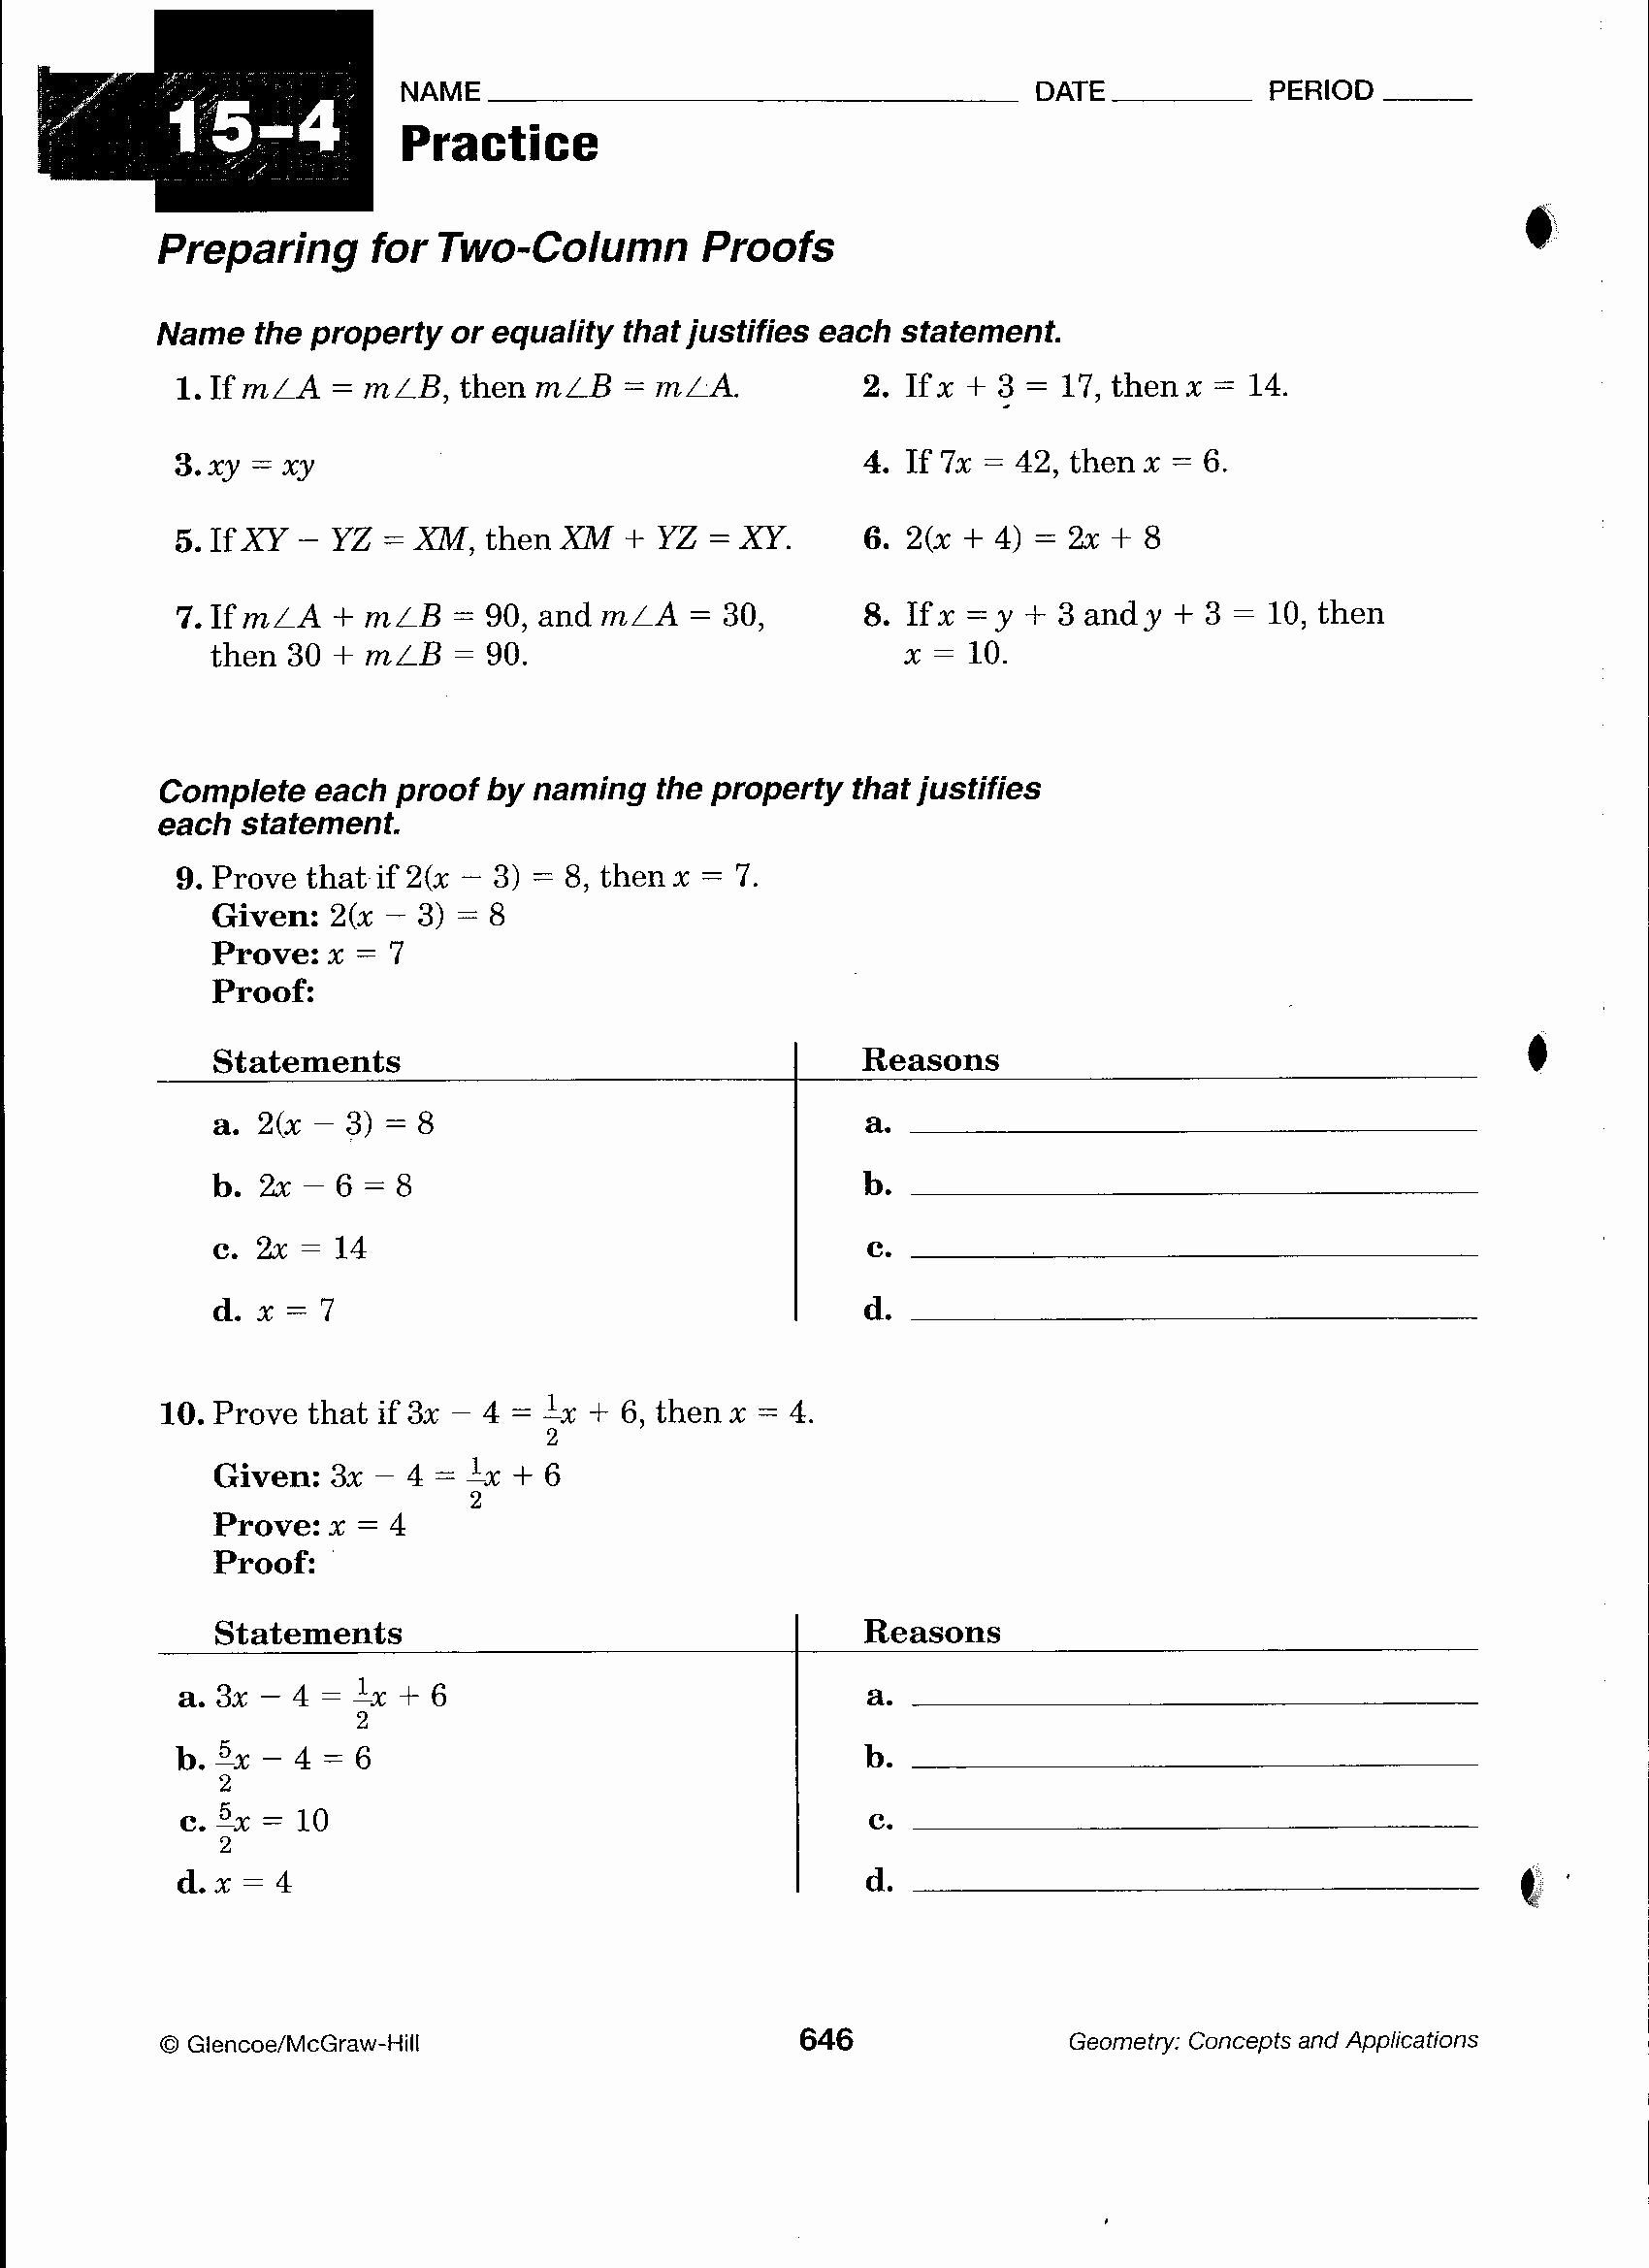 Geometric Proofs Worksheet With Answers Best Of Geometric Proofs Worksheet Chessmuseum Template Library In 2020 Geometry Proofs Geometry Worksheets Teaching Geometry